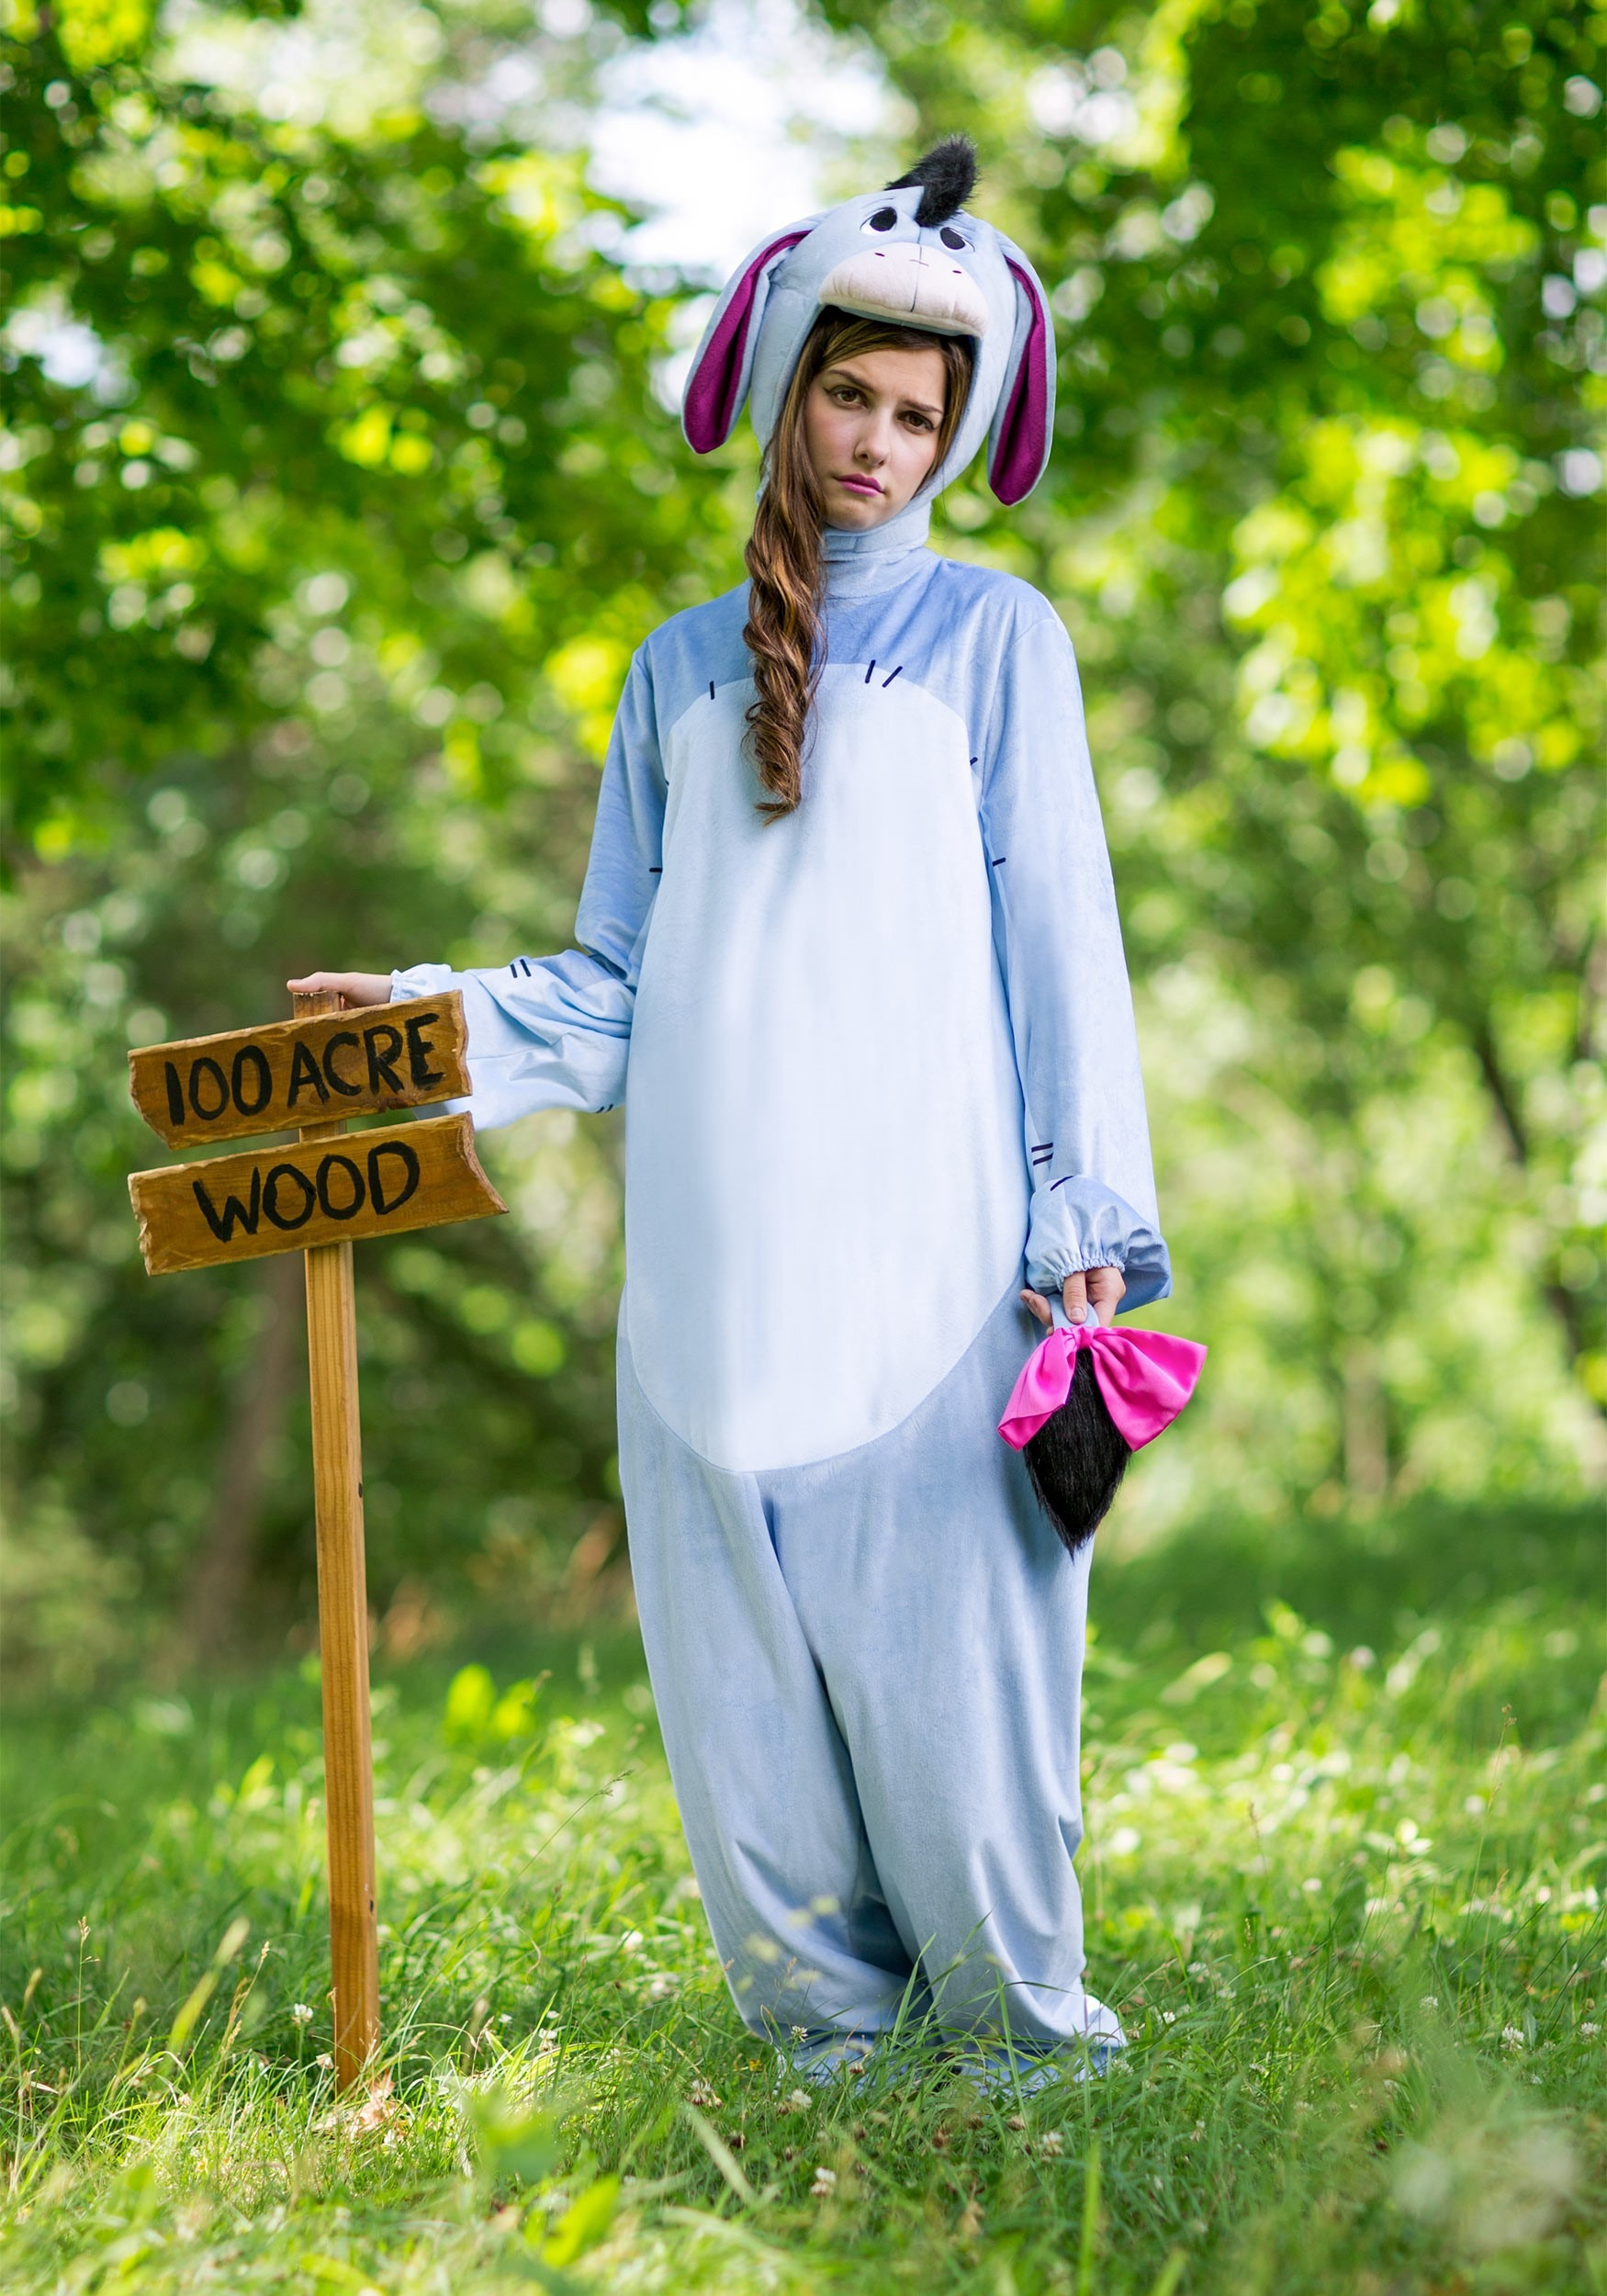 Winnie the pooh costumes tigger costumes piglet costumes for adult deluxe eeyore costume solutioingenieria Images